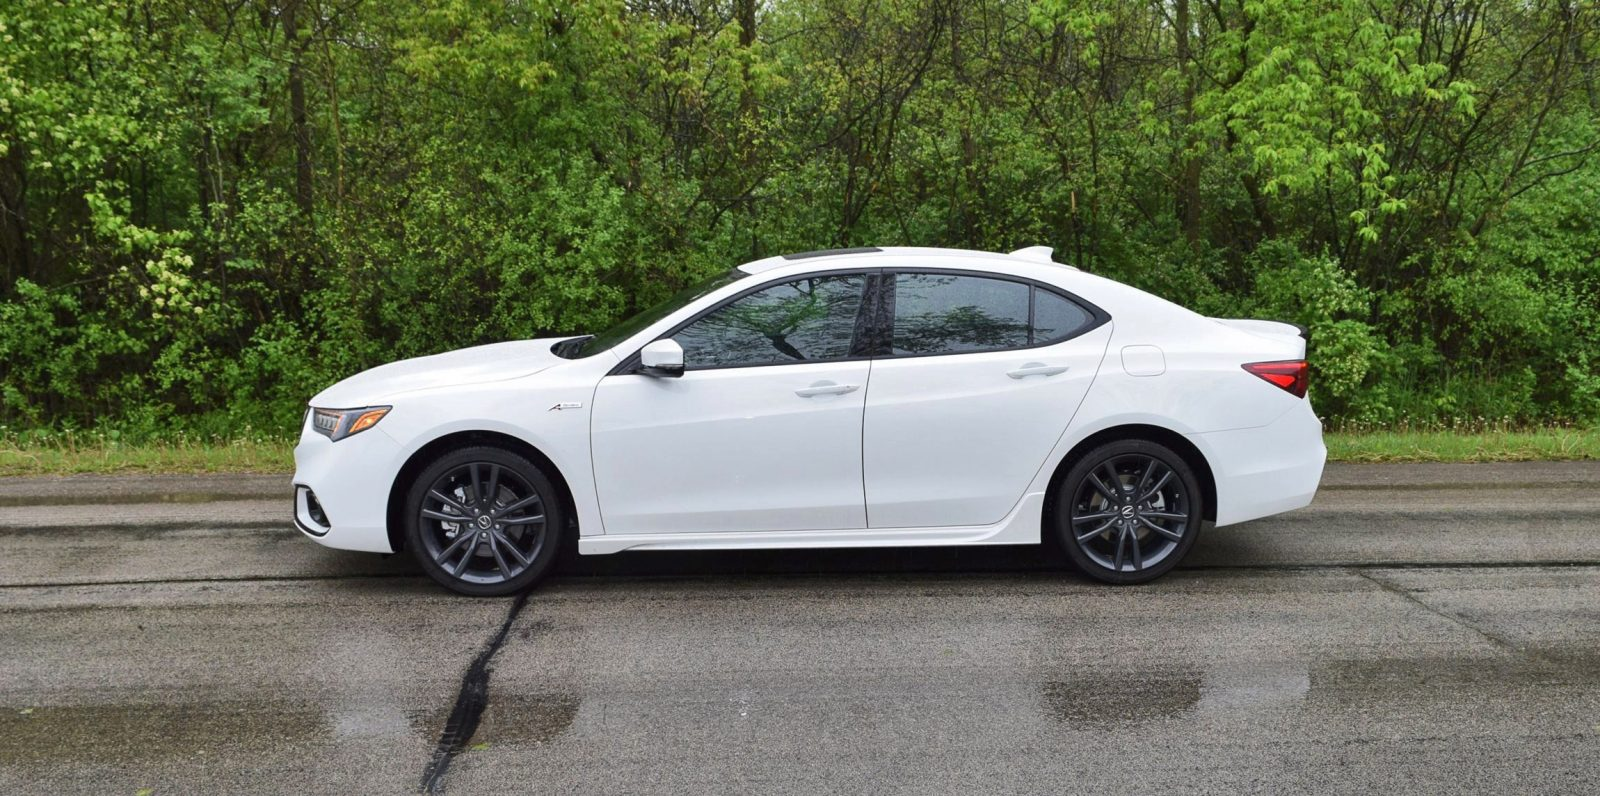 2018 Acura TLX A-Spec 11